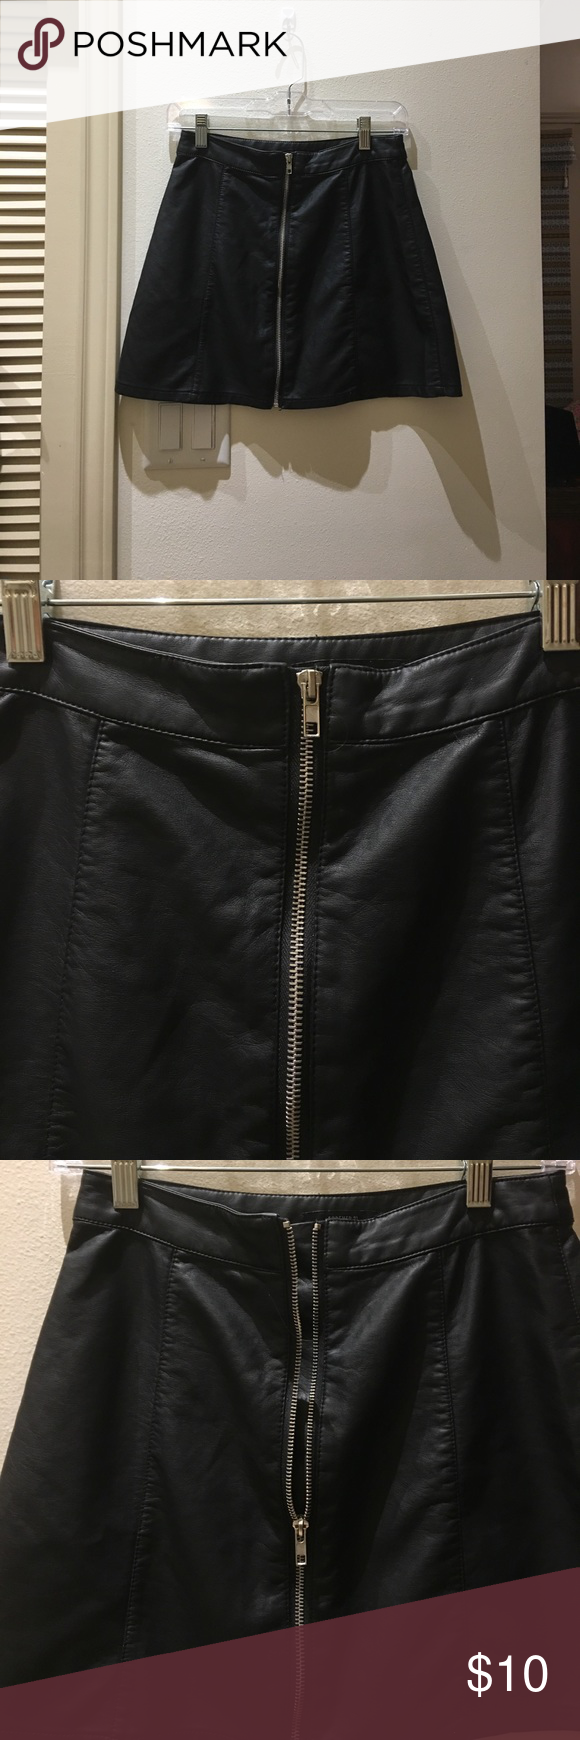 Faux leather zip up skirt NEVER WORN Never worn! The zipper works perfectly but it's just not my style Forever 21 Skirts Mini